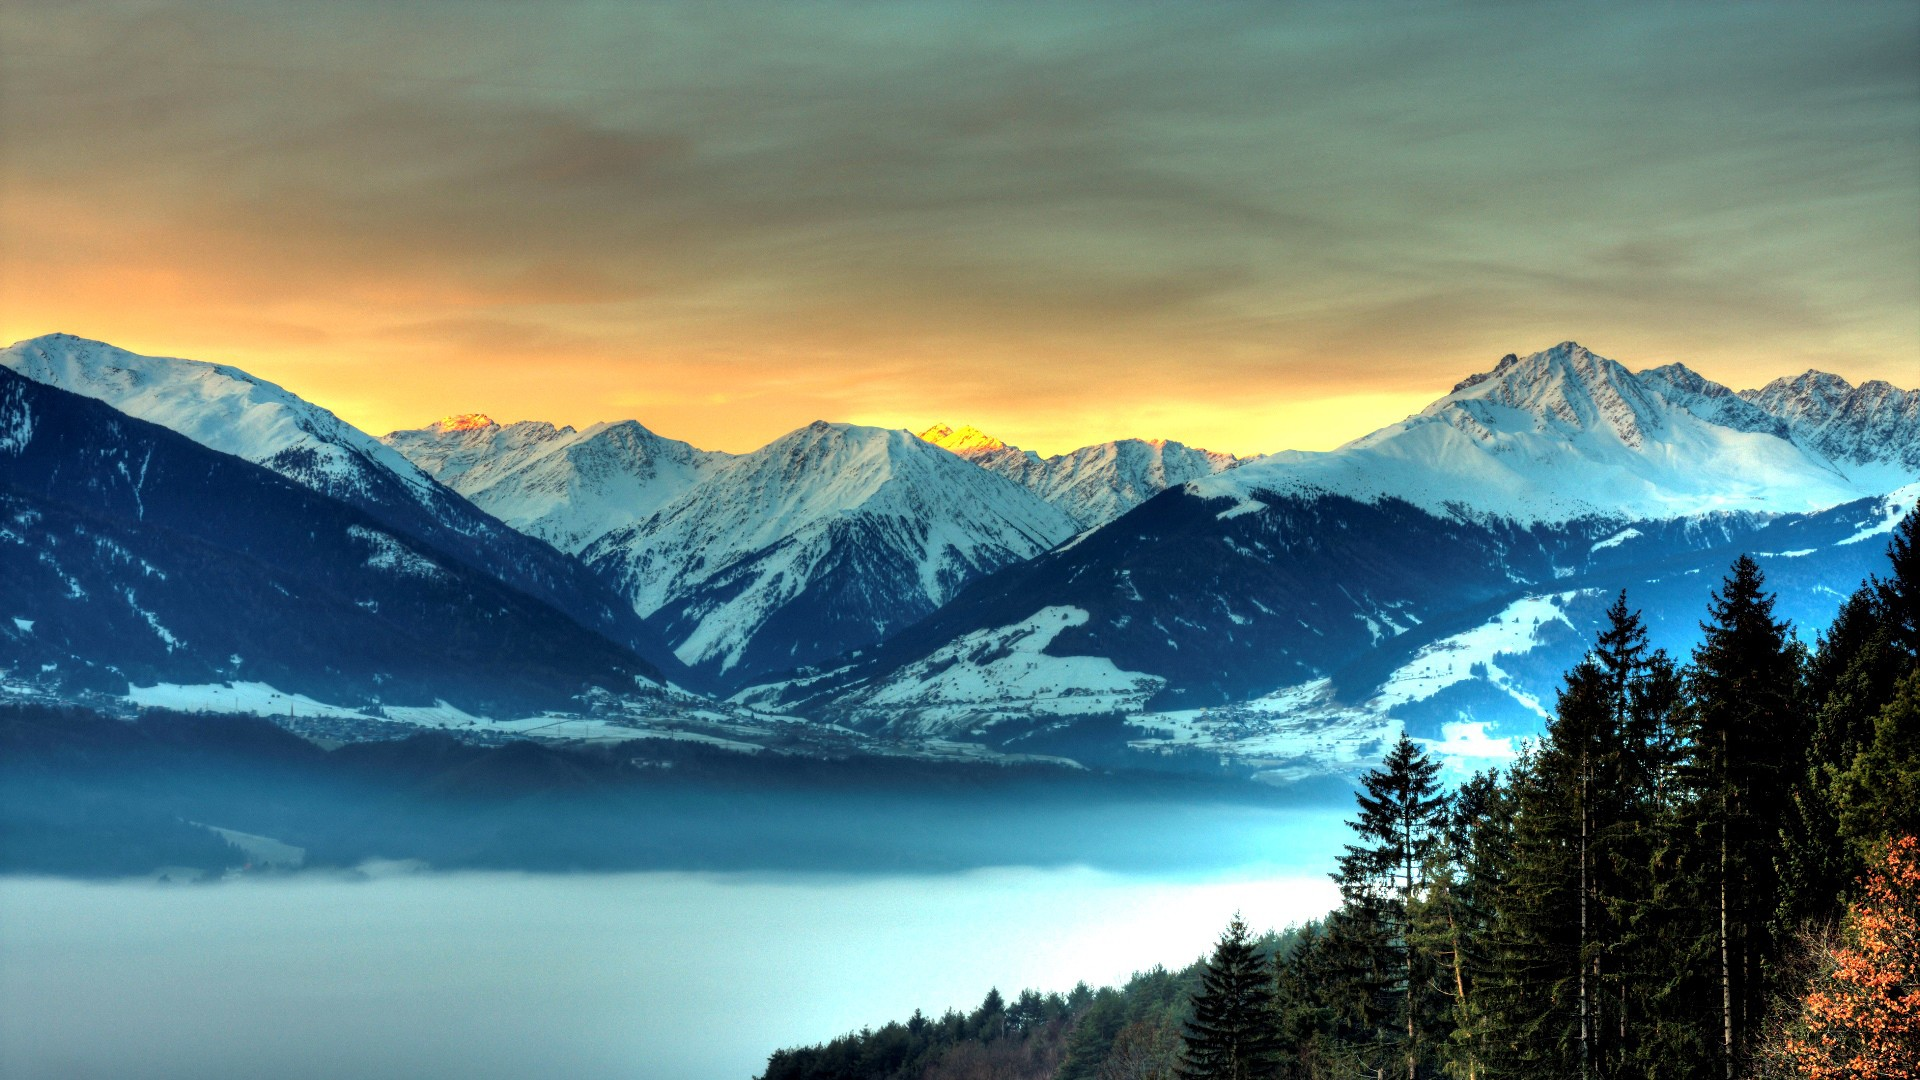 Must see Wallpaper Mountain Google - Mountain-Image-Wallpapers-050  Pic_113318.jpg